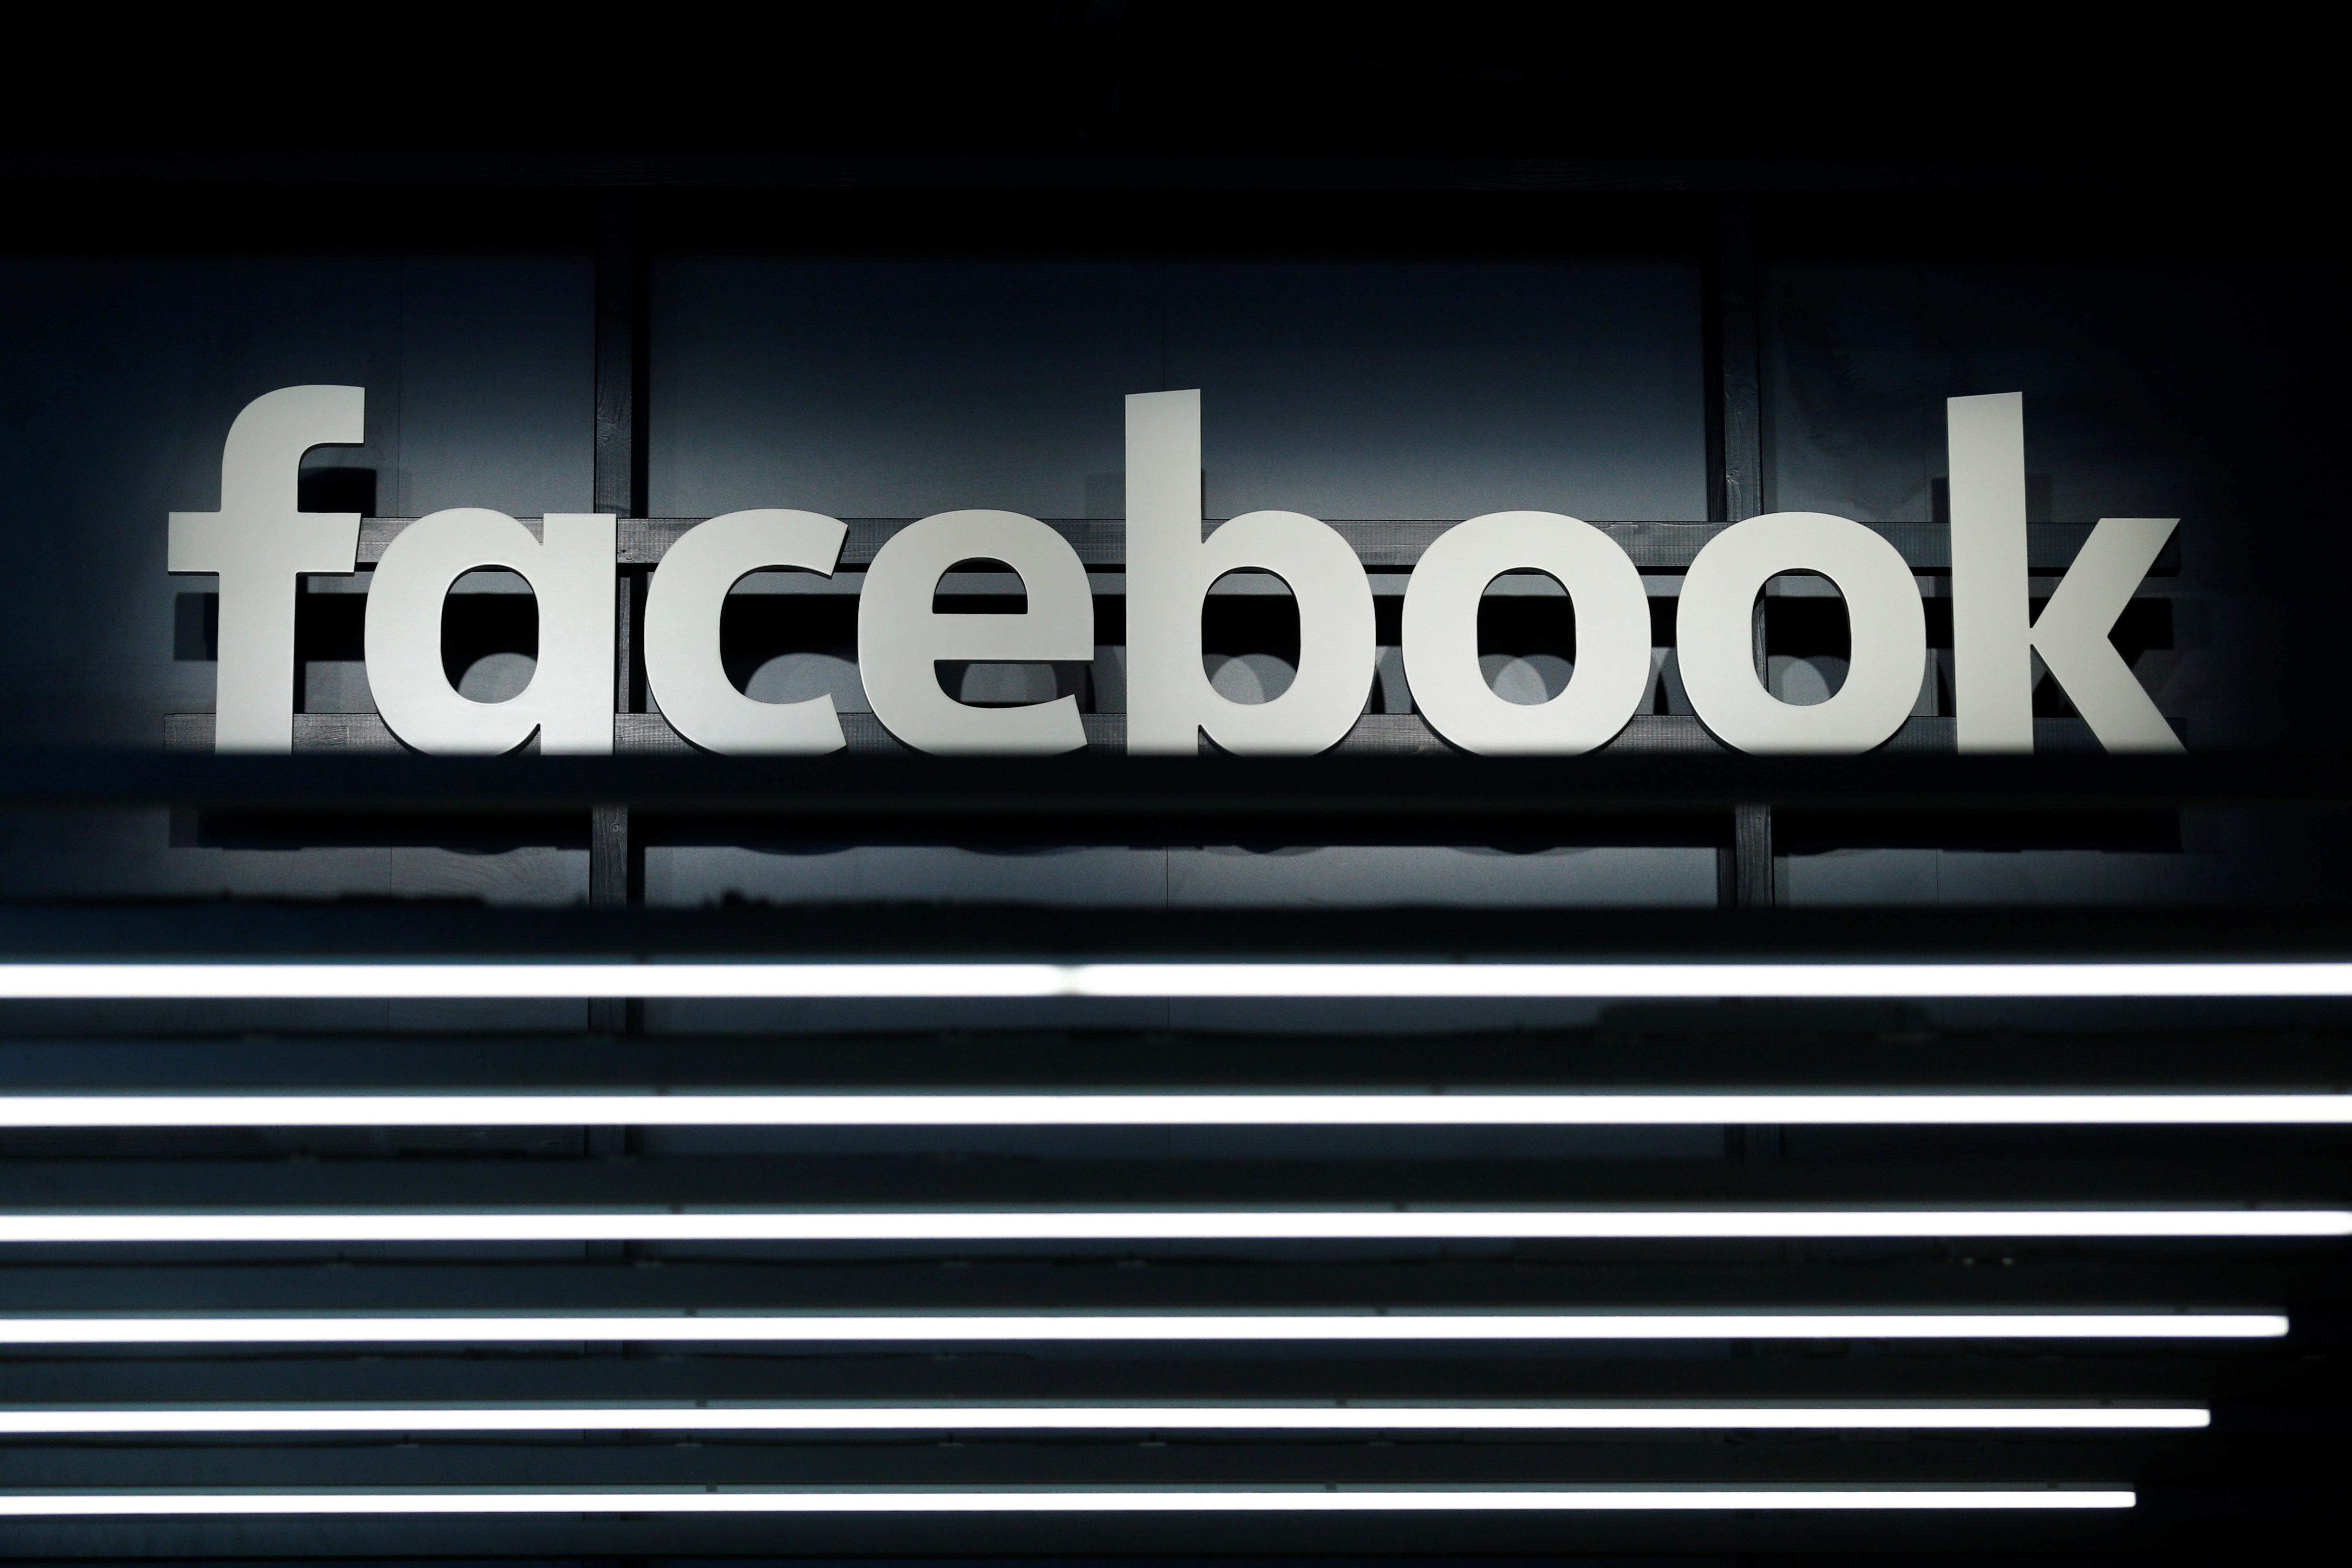 A Facebook logo is pictured at the Frankfurt Motor Show (IAA) in Frankfurt, Germany September 16, 2017. Ralph Orlowski